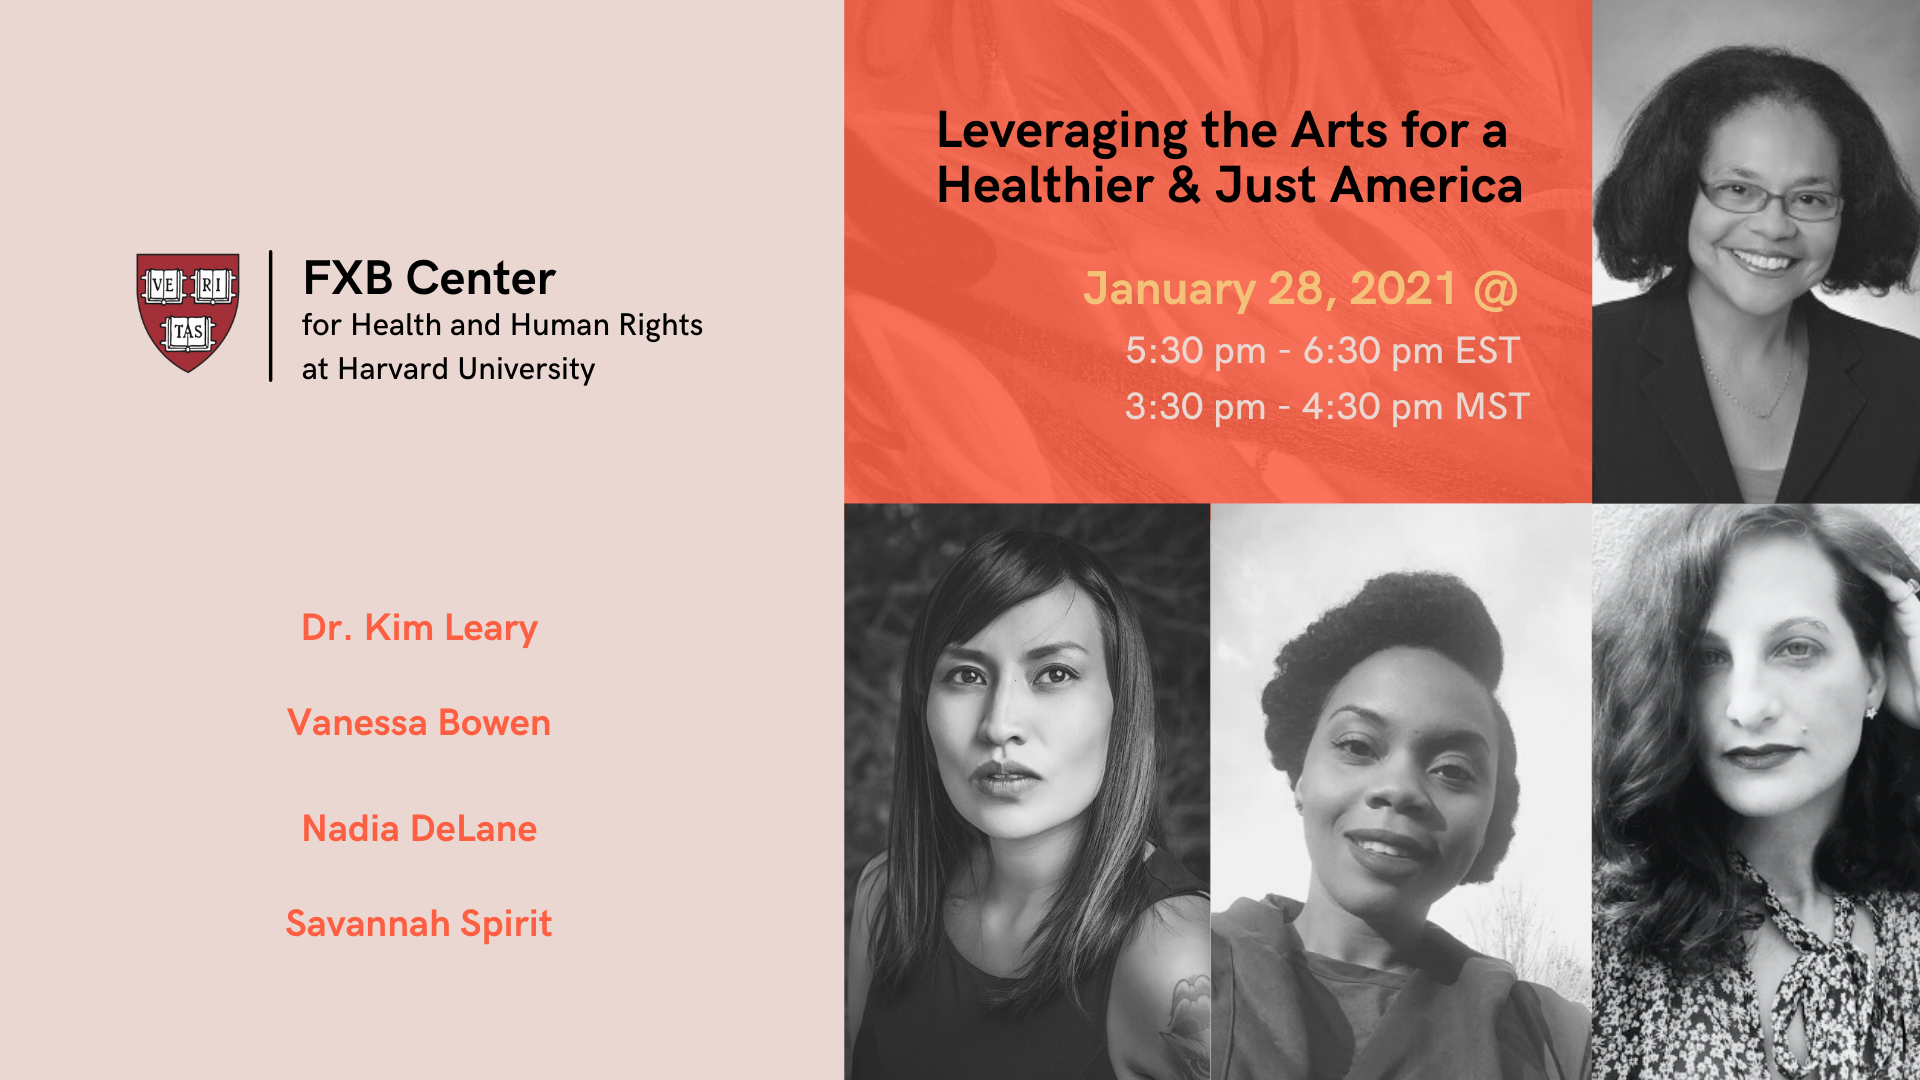 Leveraging the Arts for a Healthier & Just America